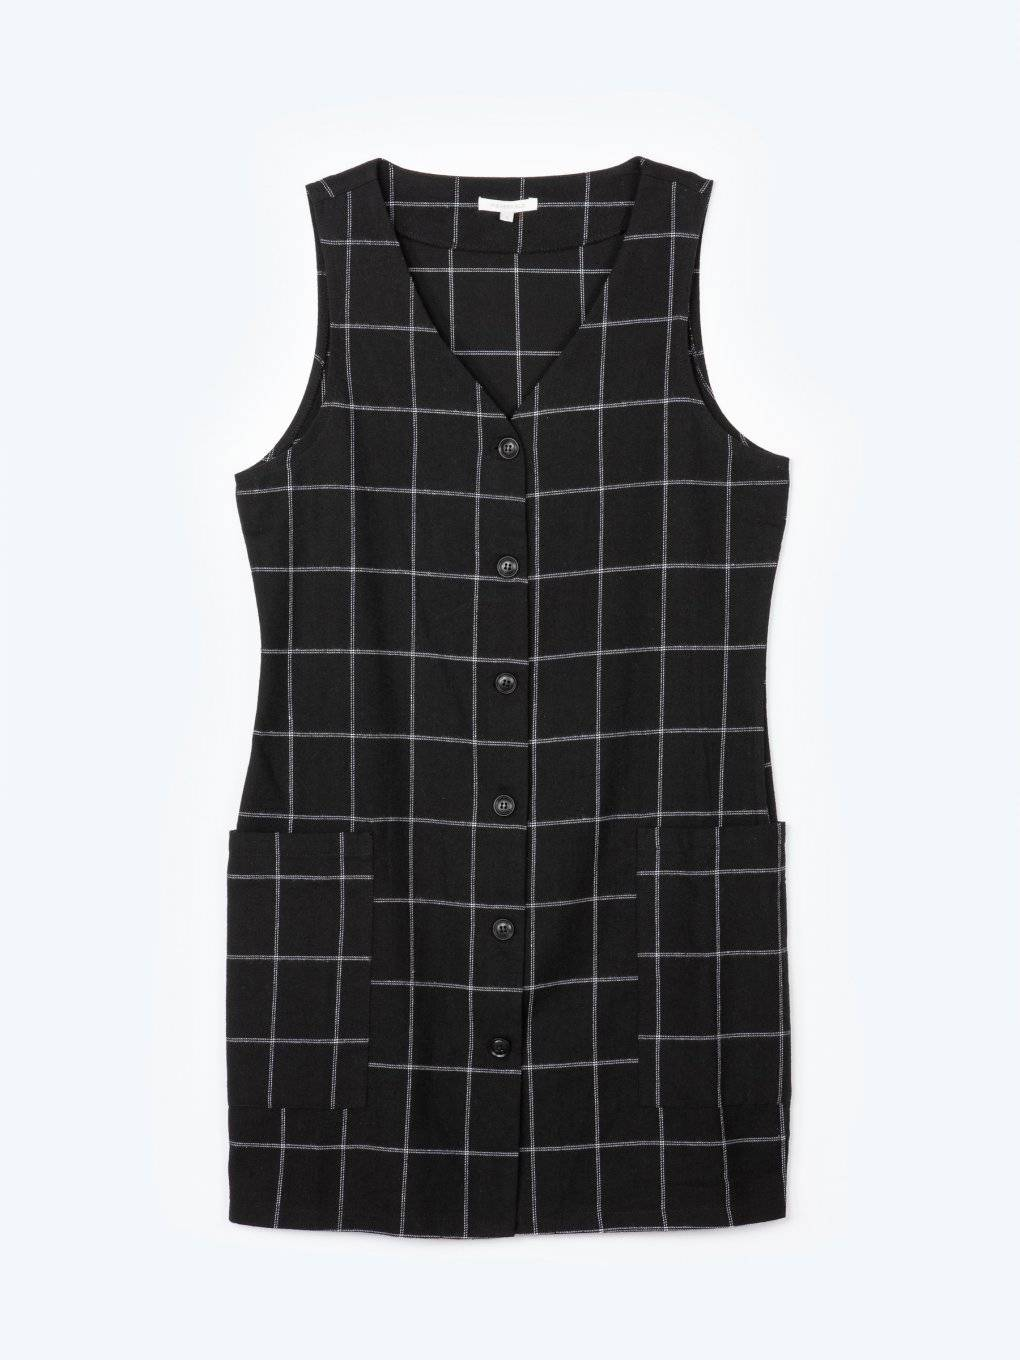 Plaid button down sleeveless dress